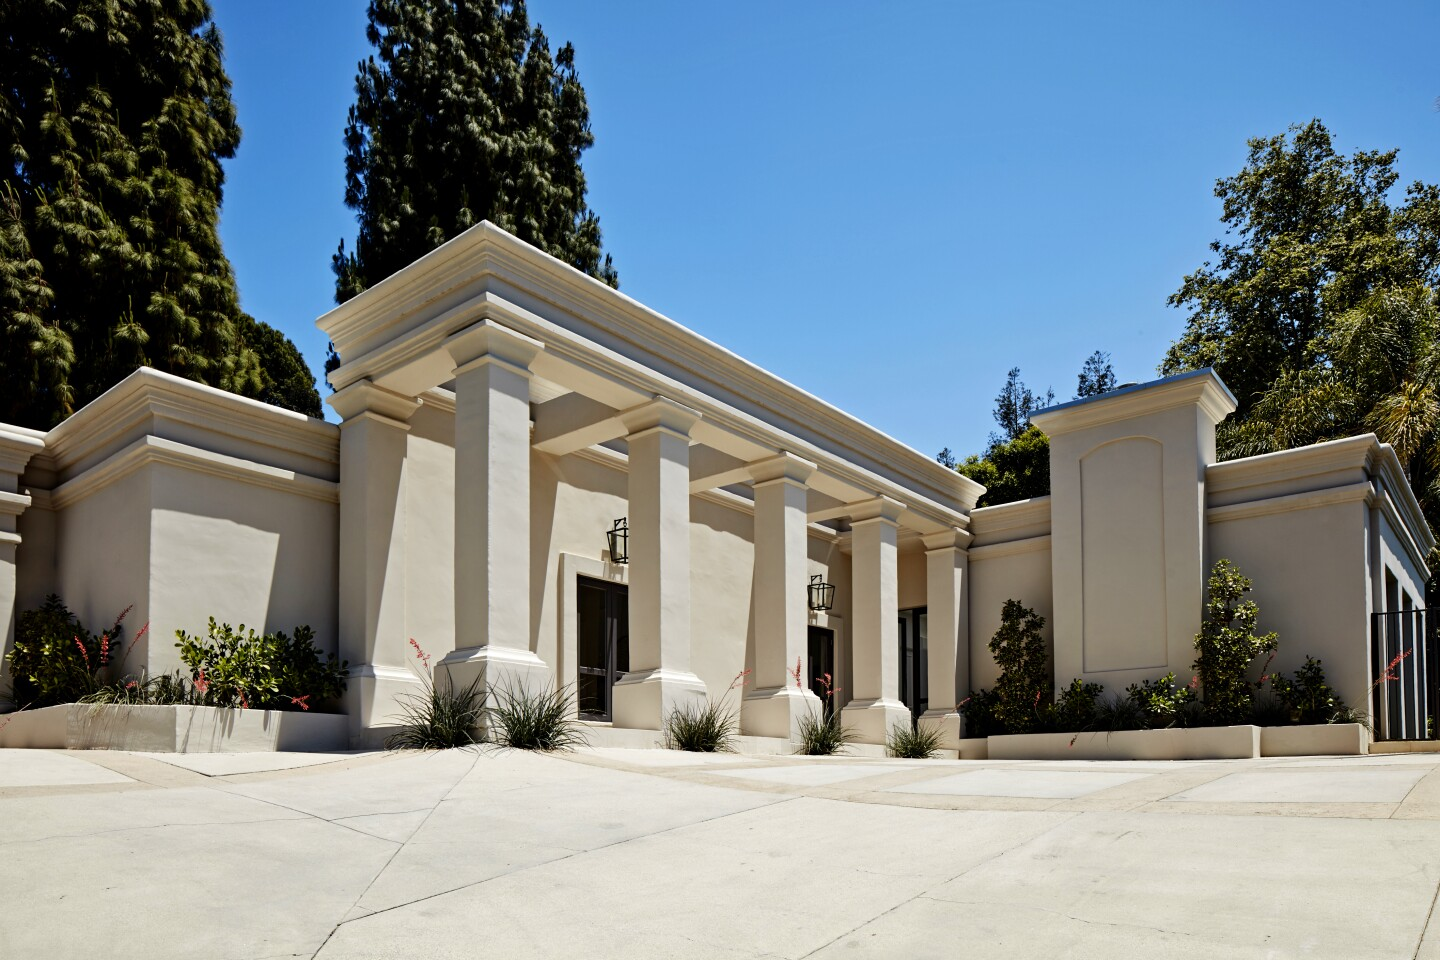 Subban and Vonn, who are engaged, paid $6.75 million for a renovated home in the Beverly Hills Post Office area. Reimagined by JR Builders, the villa-style home features a column-lined entry, gallery walls and skylights. Pocketing doors open to a swimming pool with a spa in the backyard. The house sits behind gates on more than half an acre.